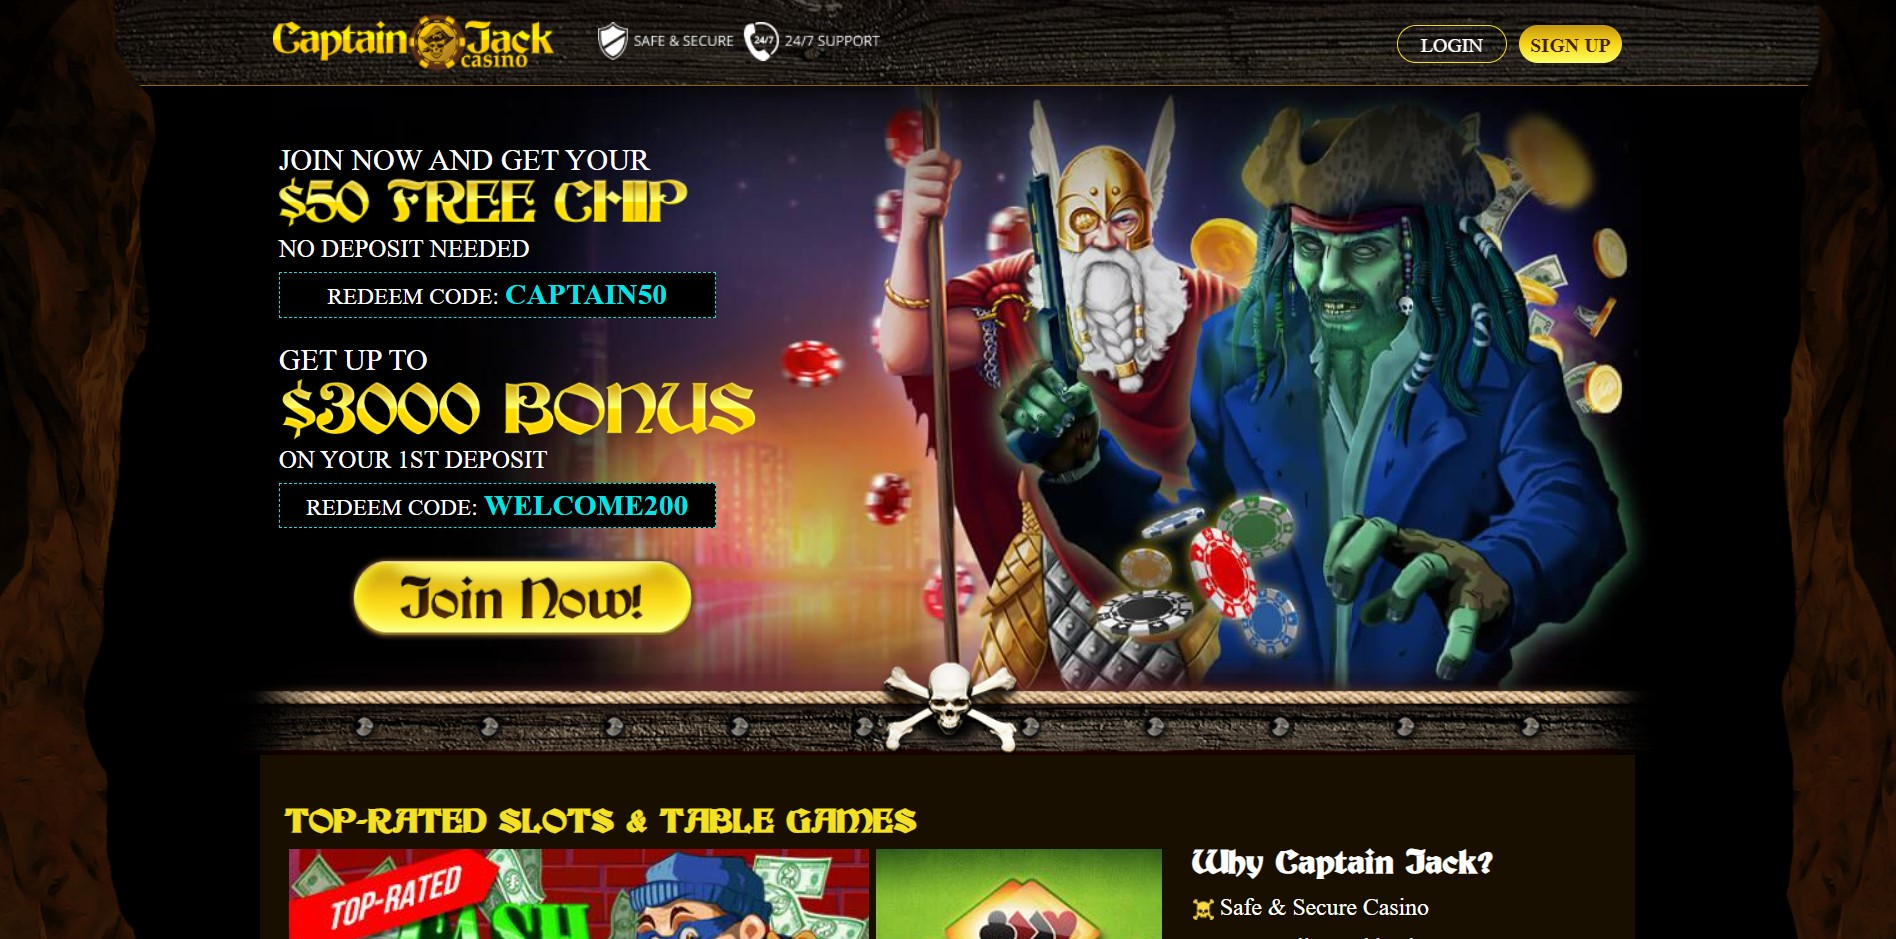 Captain Jack Casino Singapore